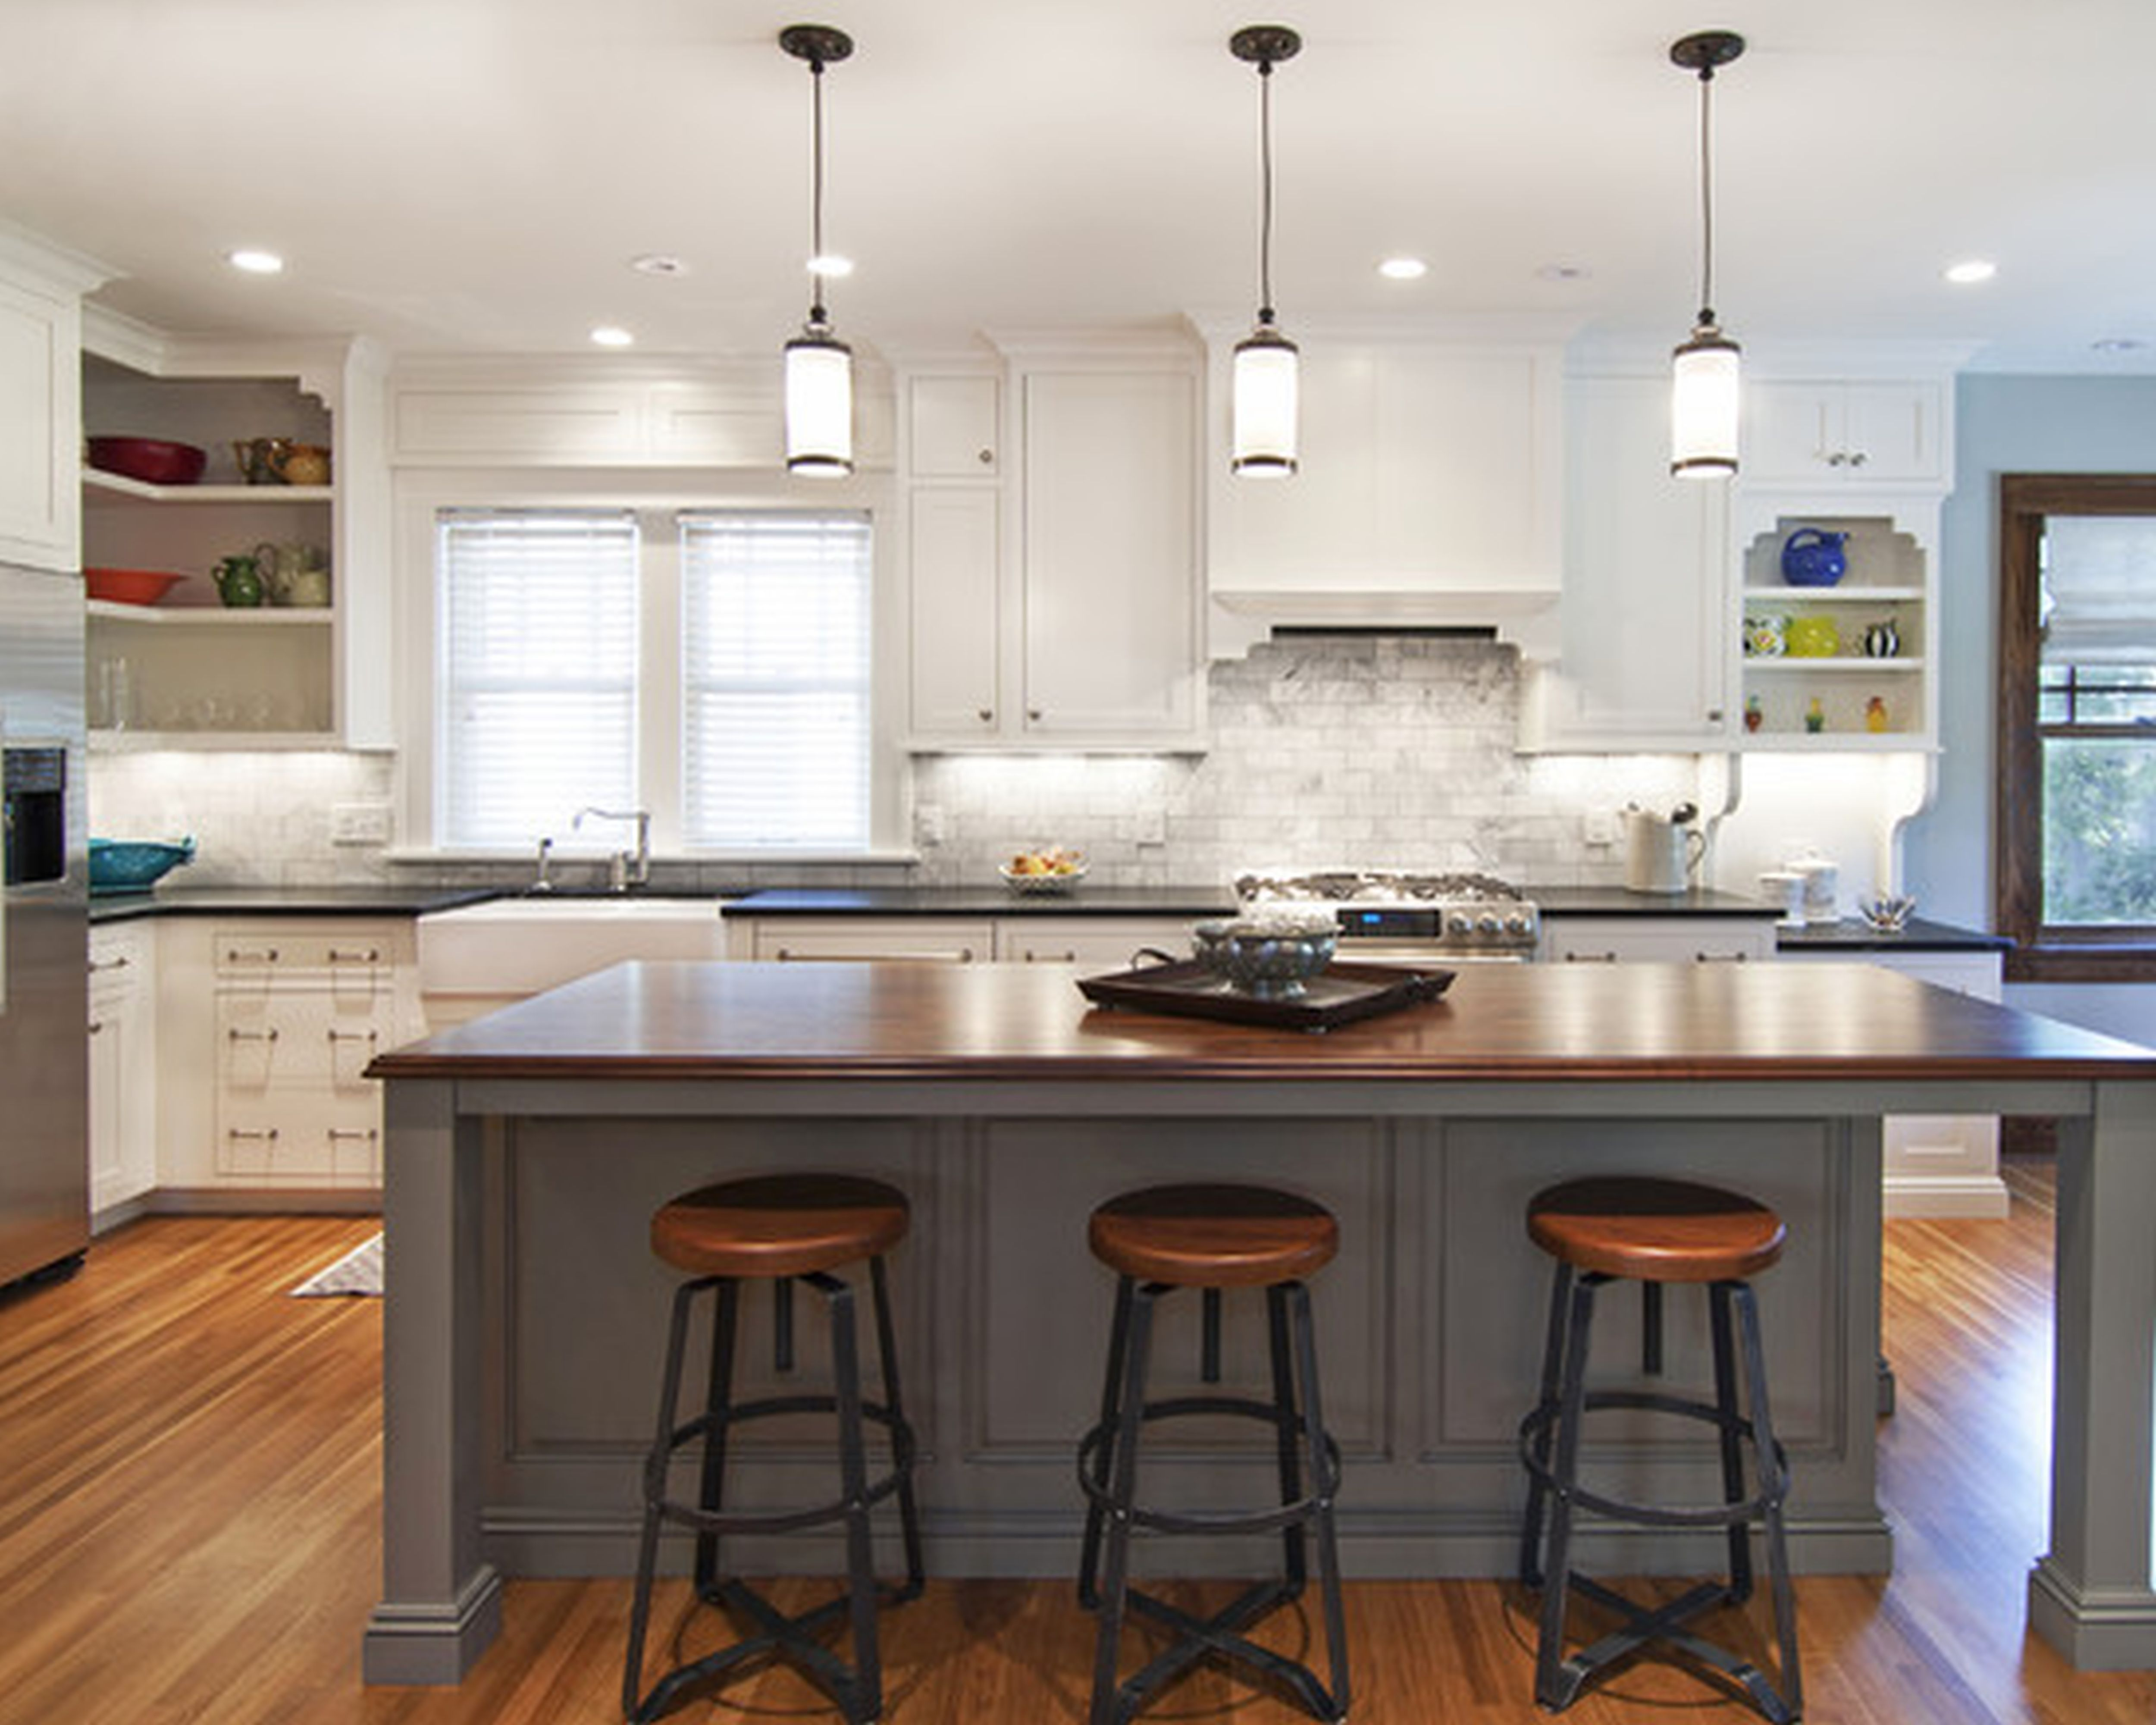 Awesome Trio Pendant Lights Hung Above Interesting Diy Kitchen ...